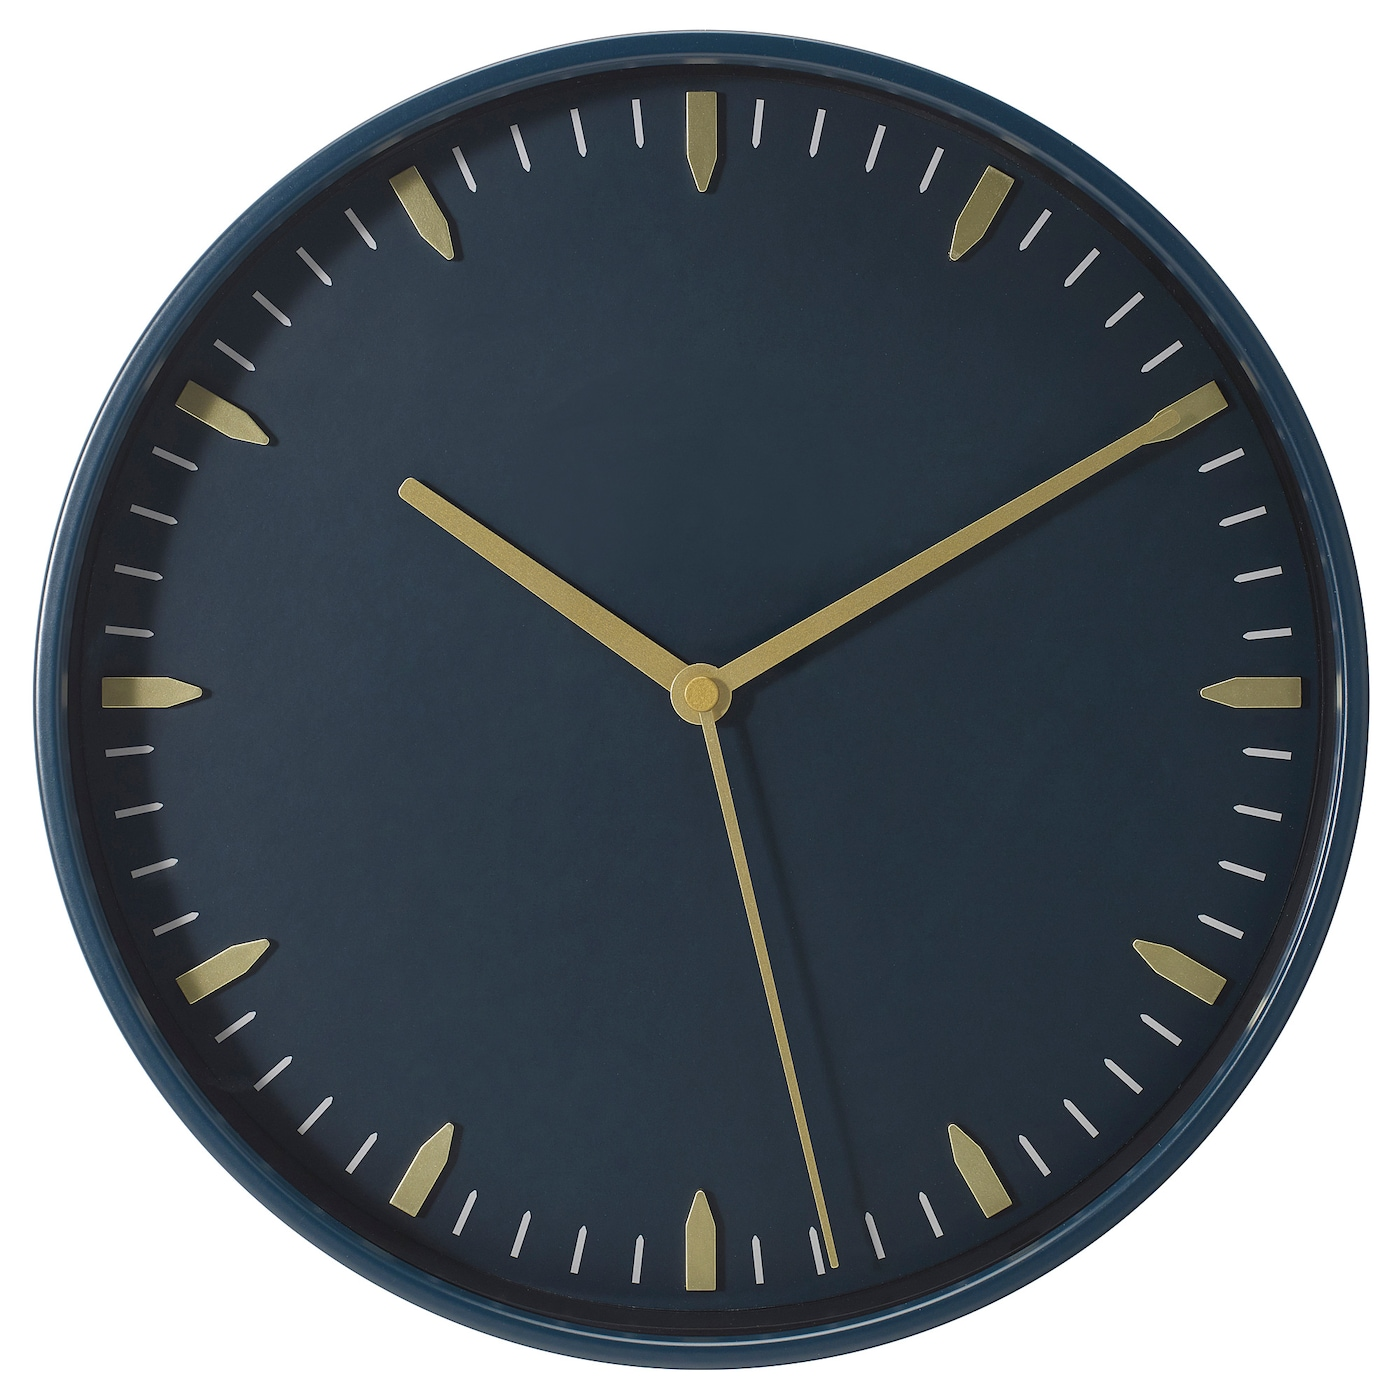 IKEA SKÄRIG wall clock Highly accurate at keeping time as it is fitted with a quartz movement.